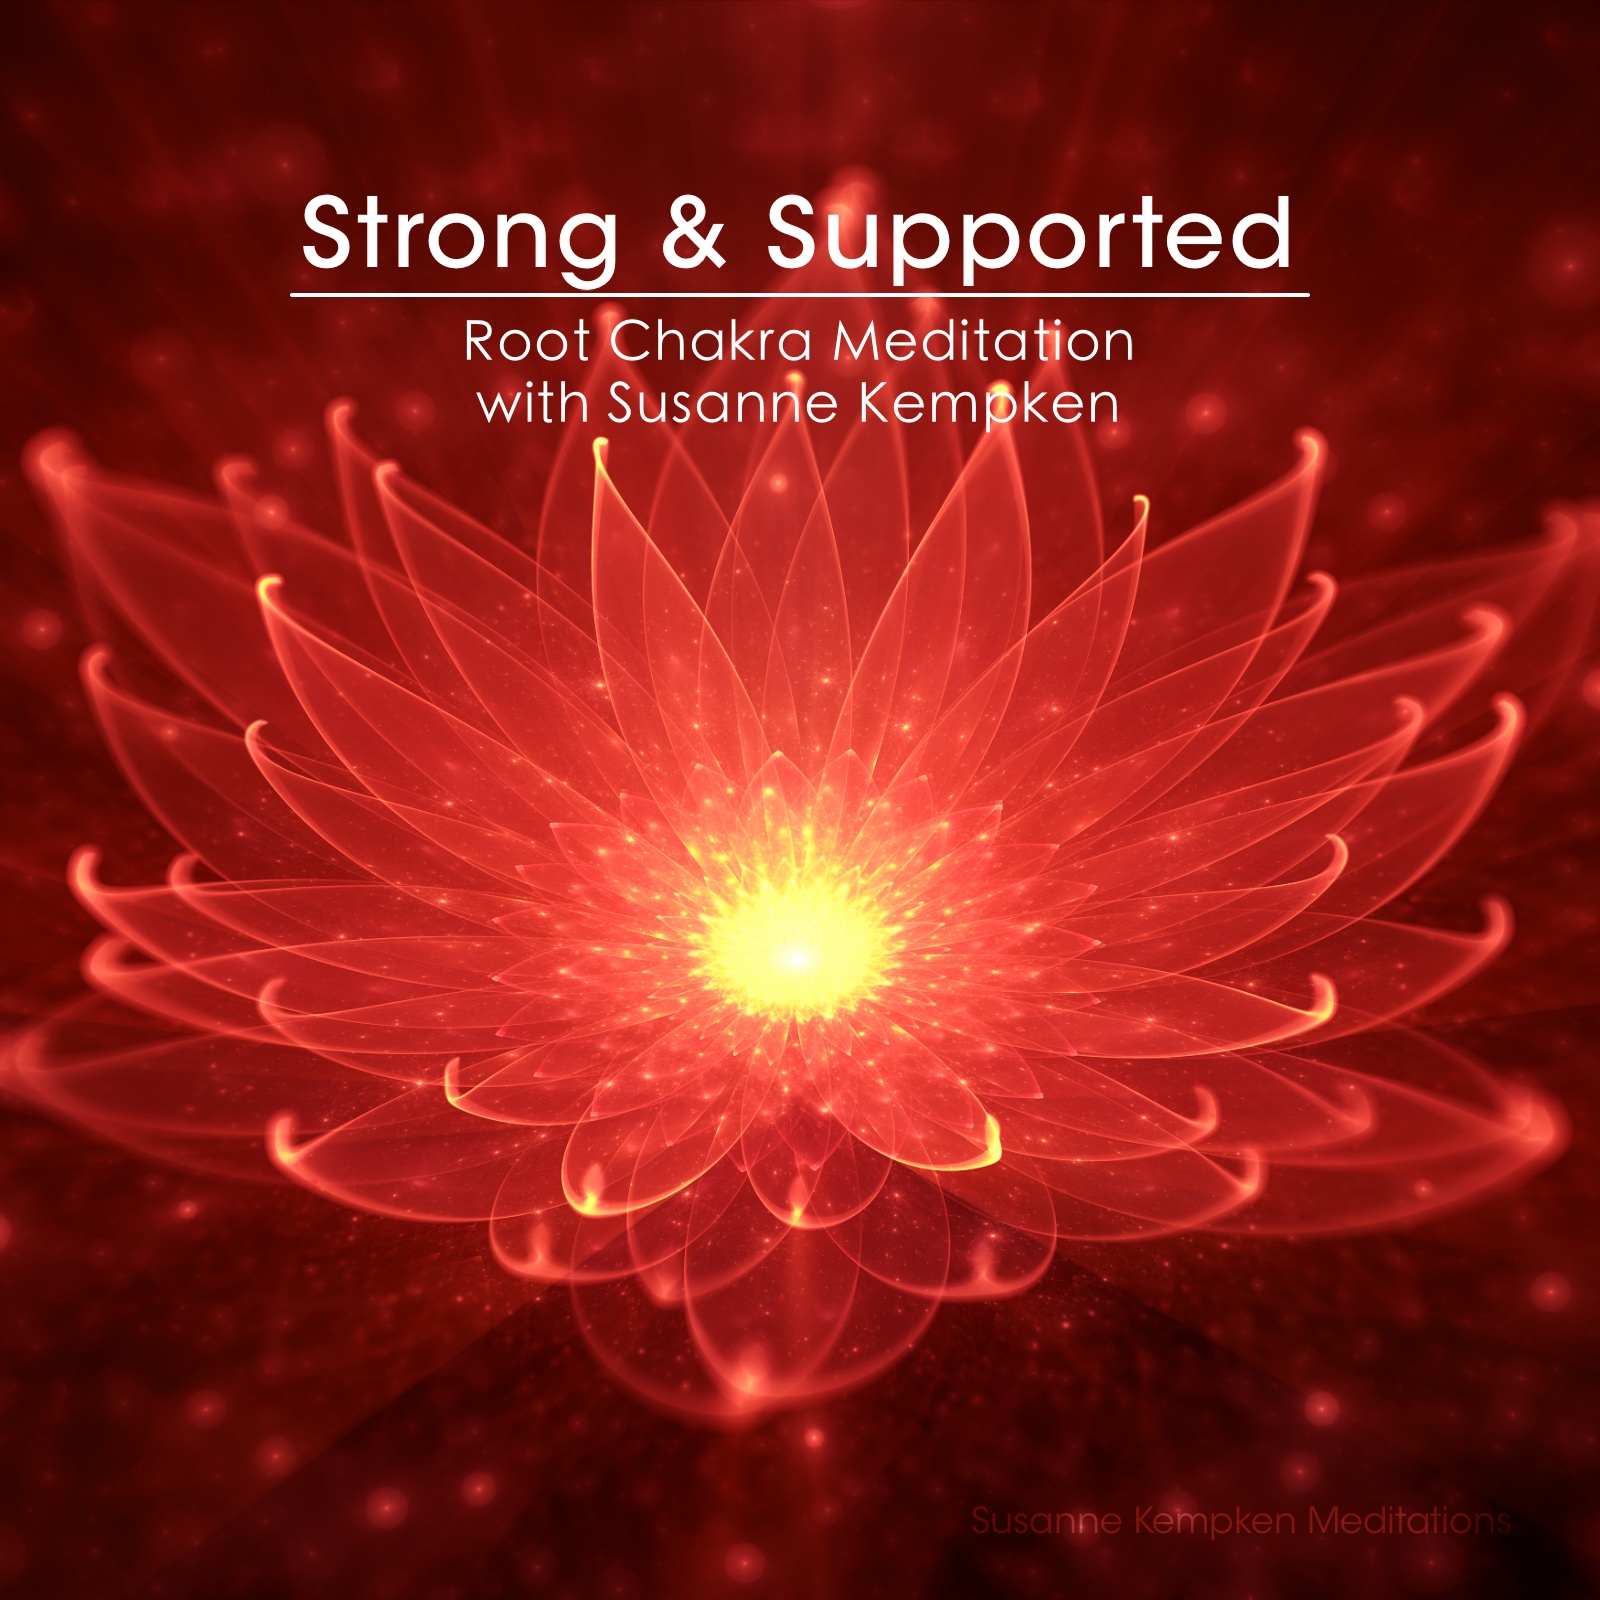 Strong & Supported - Root Chakra Meditation